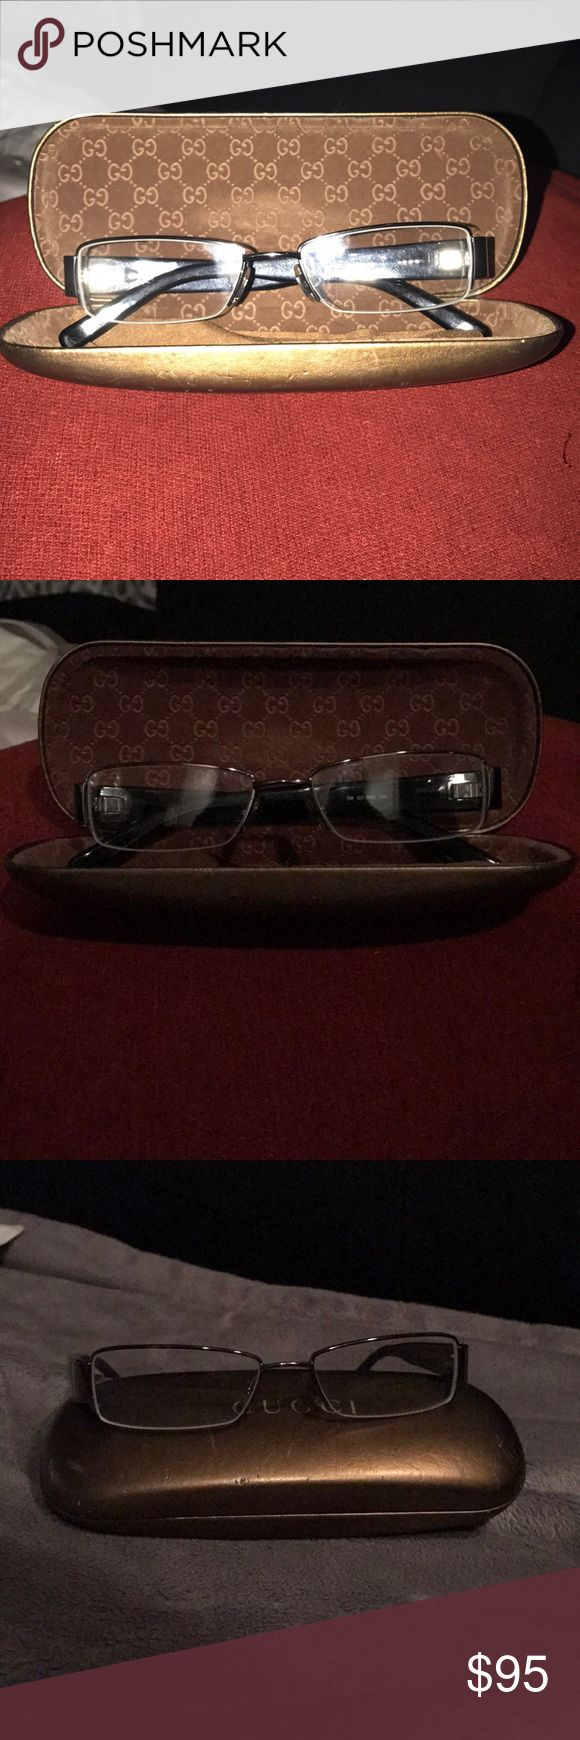 Gucci glasses frames Gucci glasses frames. They already have prescription lenses in them, but could easily be replaced with your (the buyer's) prescription. Really cute and in great condition. Gucci Accessories Glasses